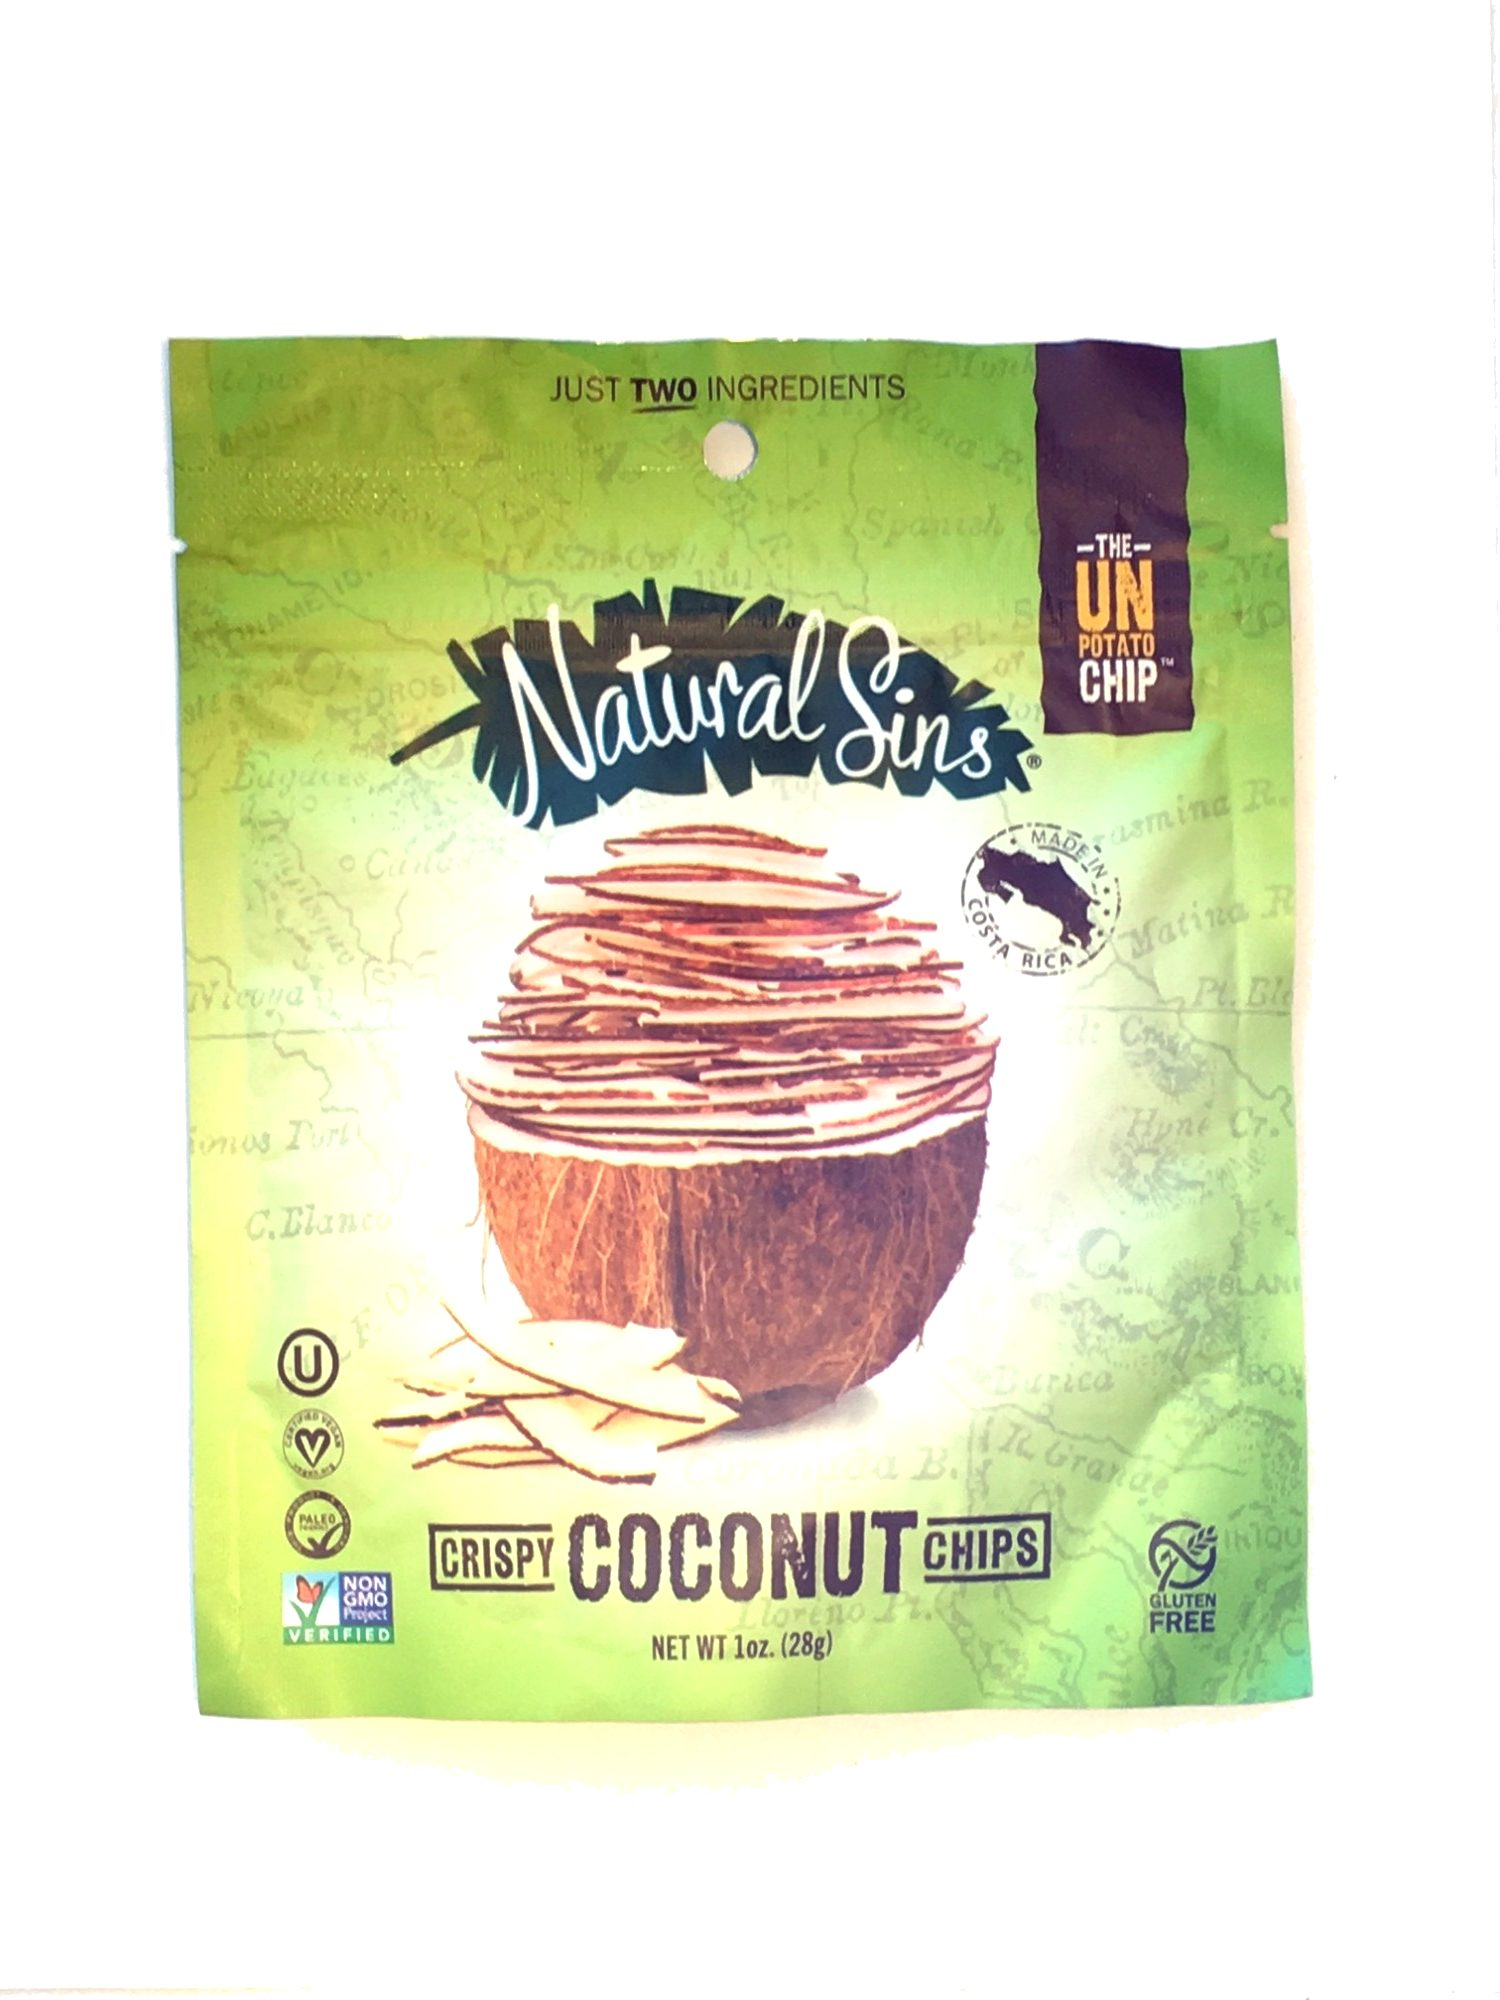 Crispy Coconut Chips - Product